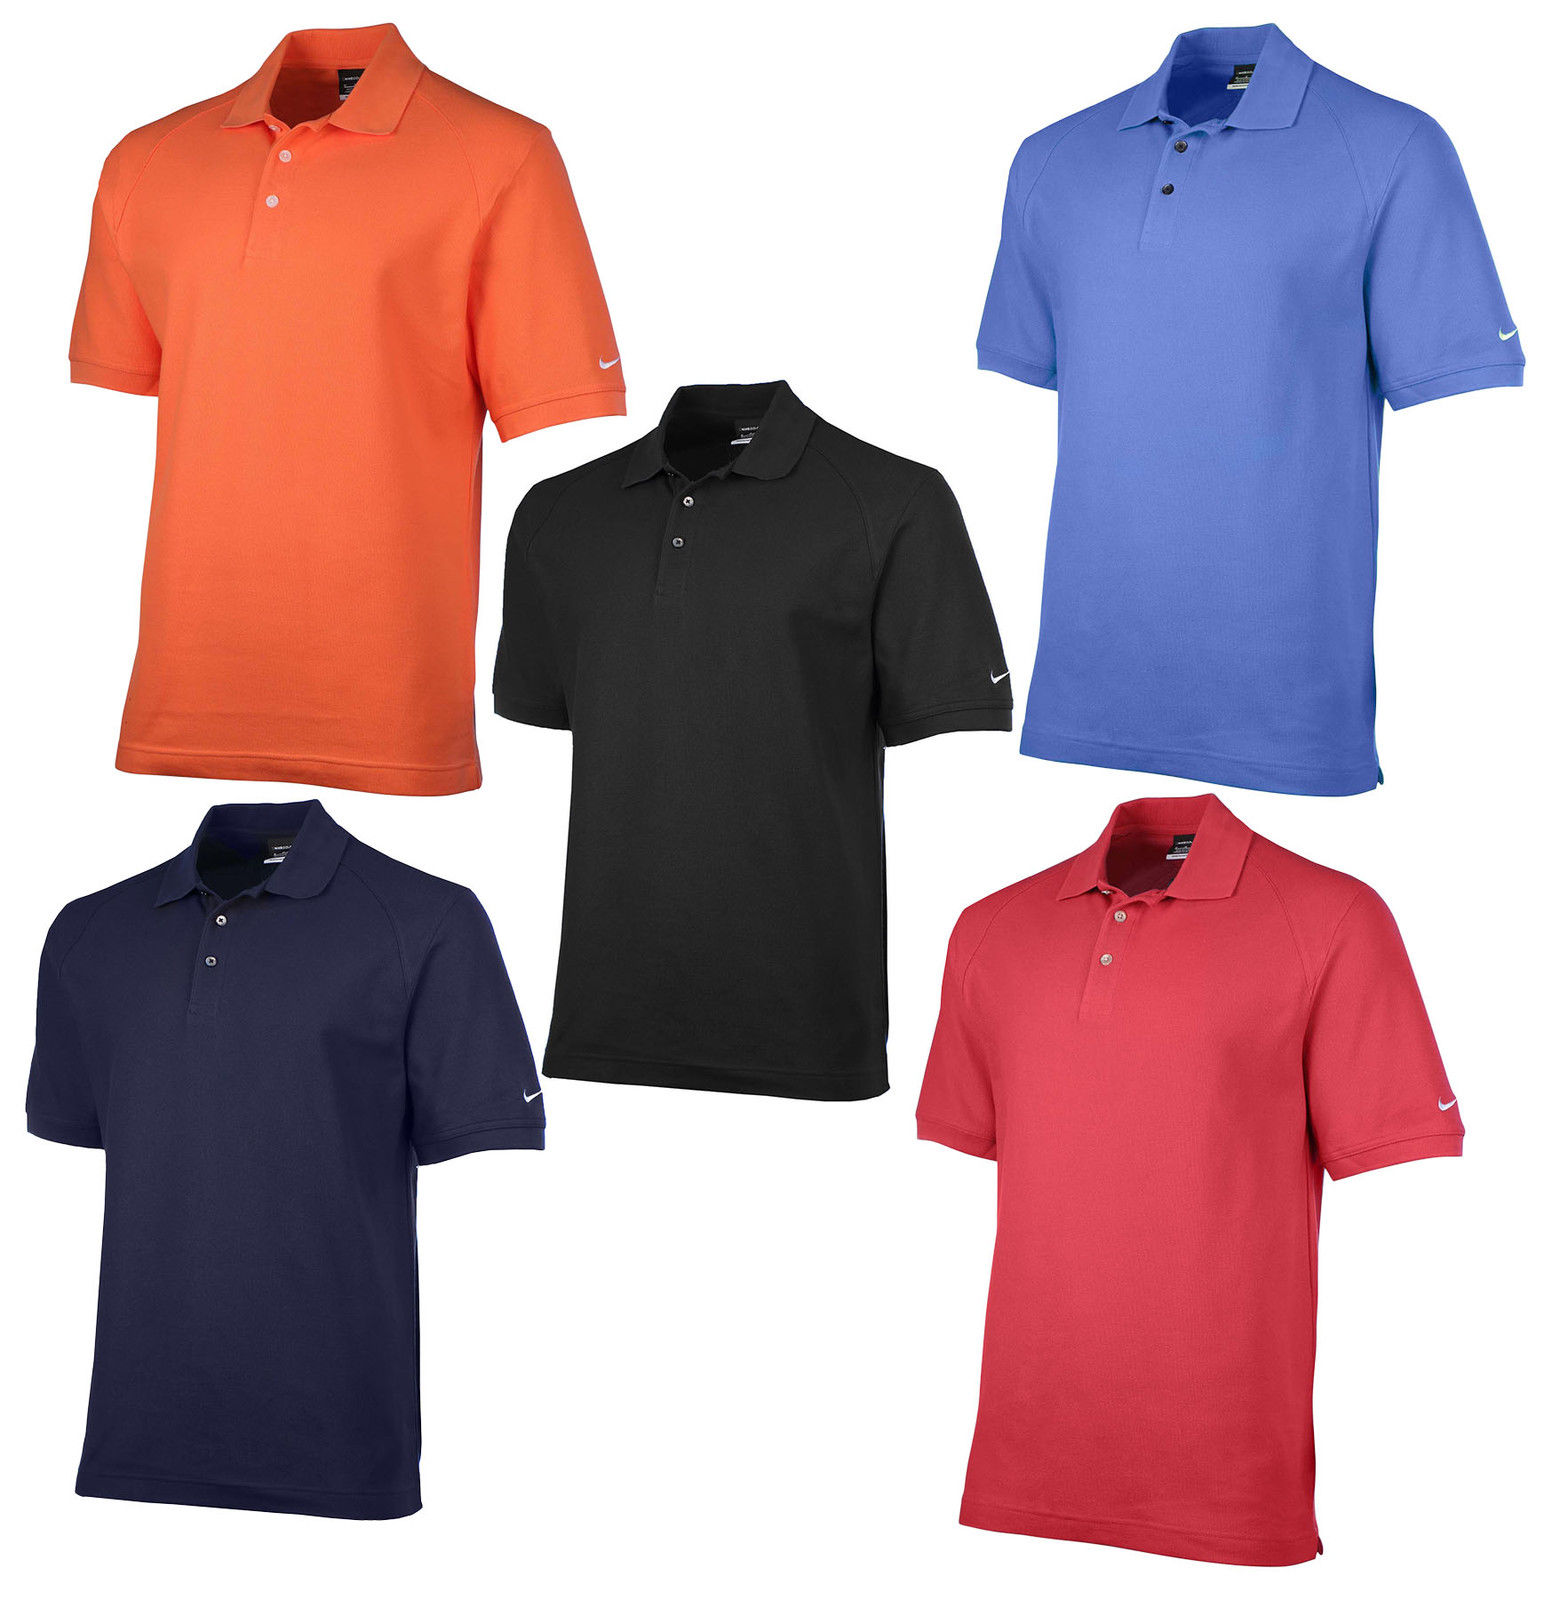 Nike Men's Golf Cotton Polo Sale $19.99  Free Shipping from eBay